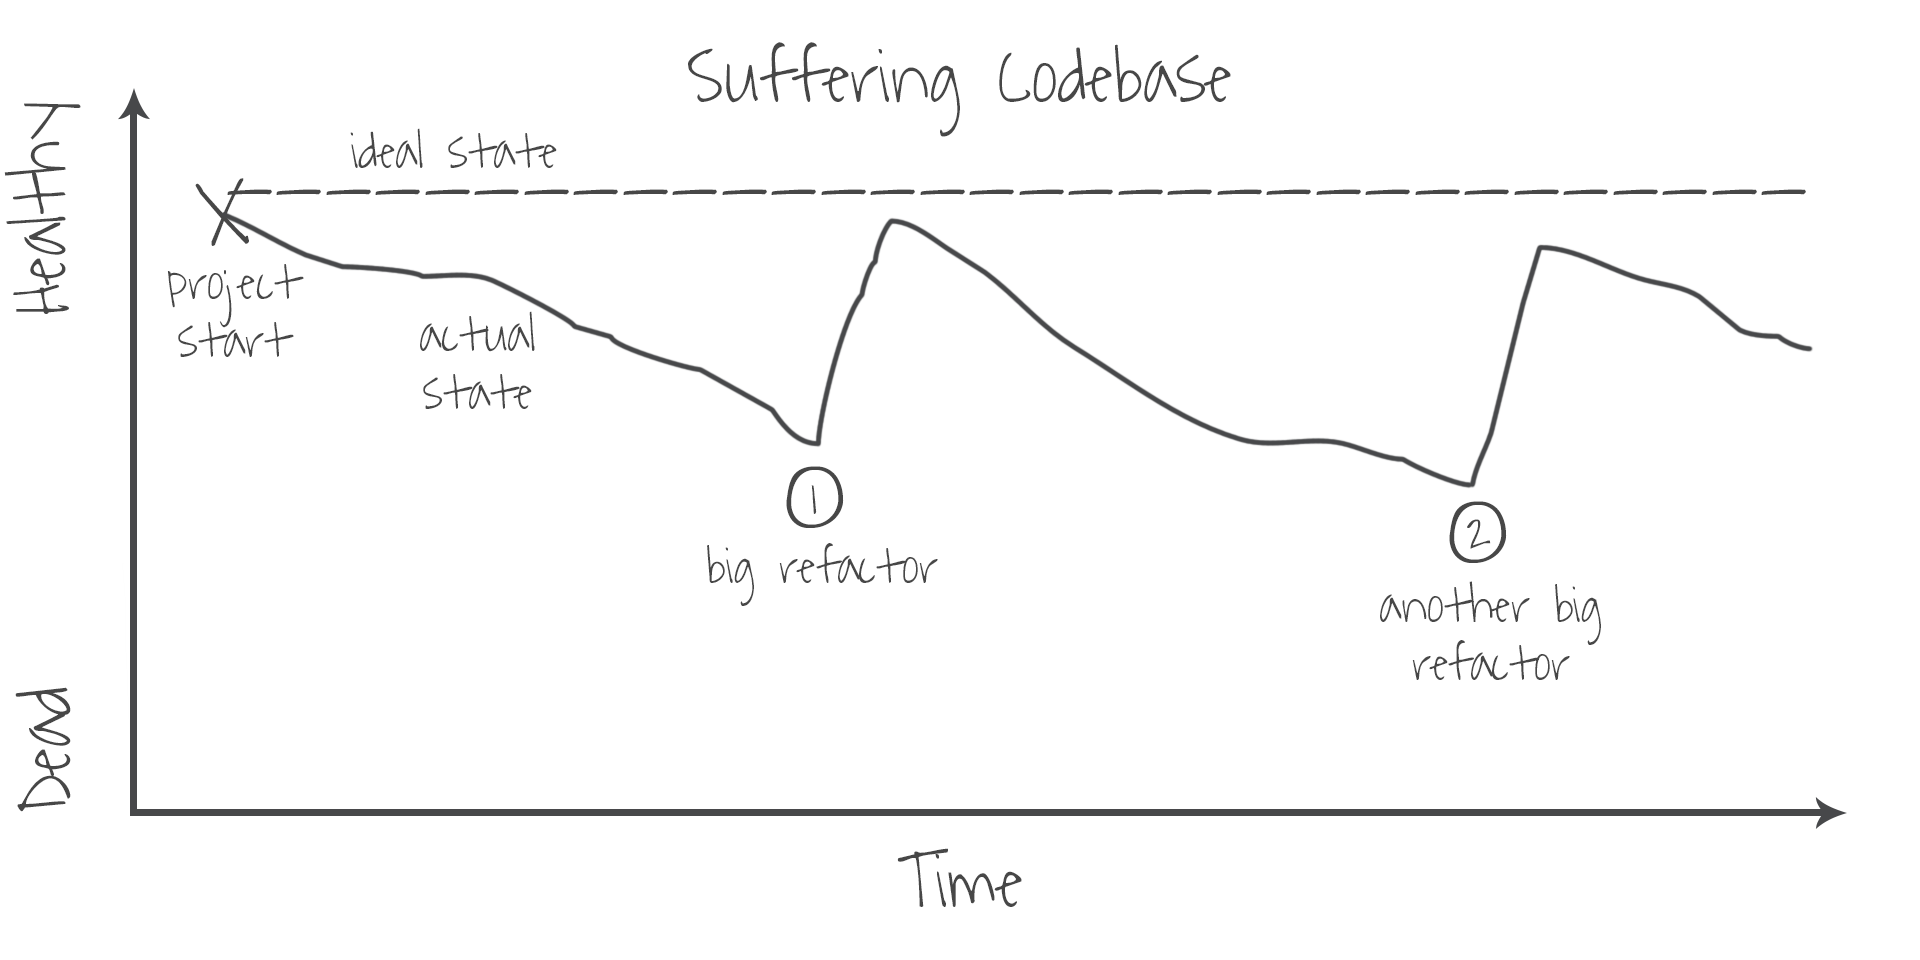 suffering-codebase